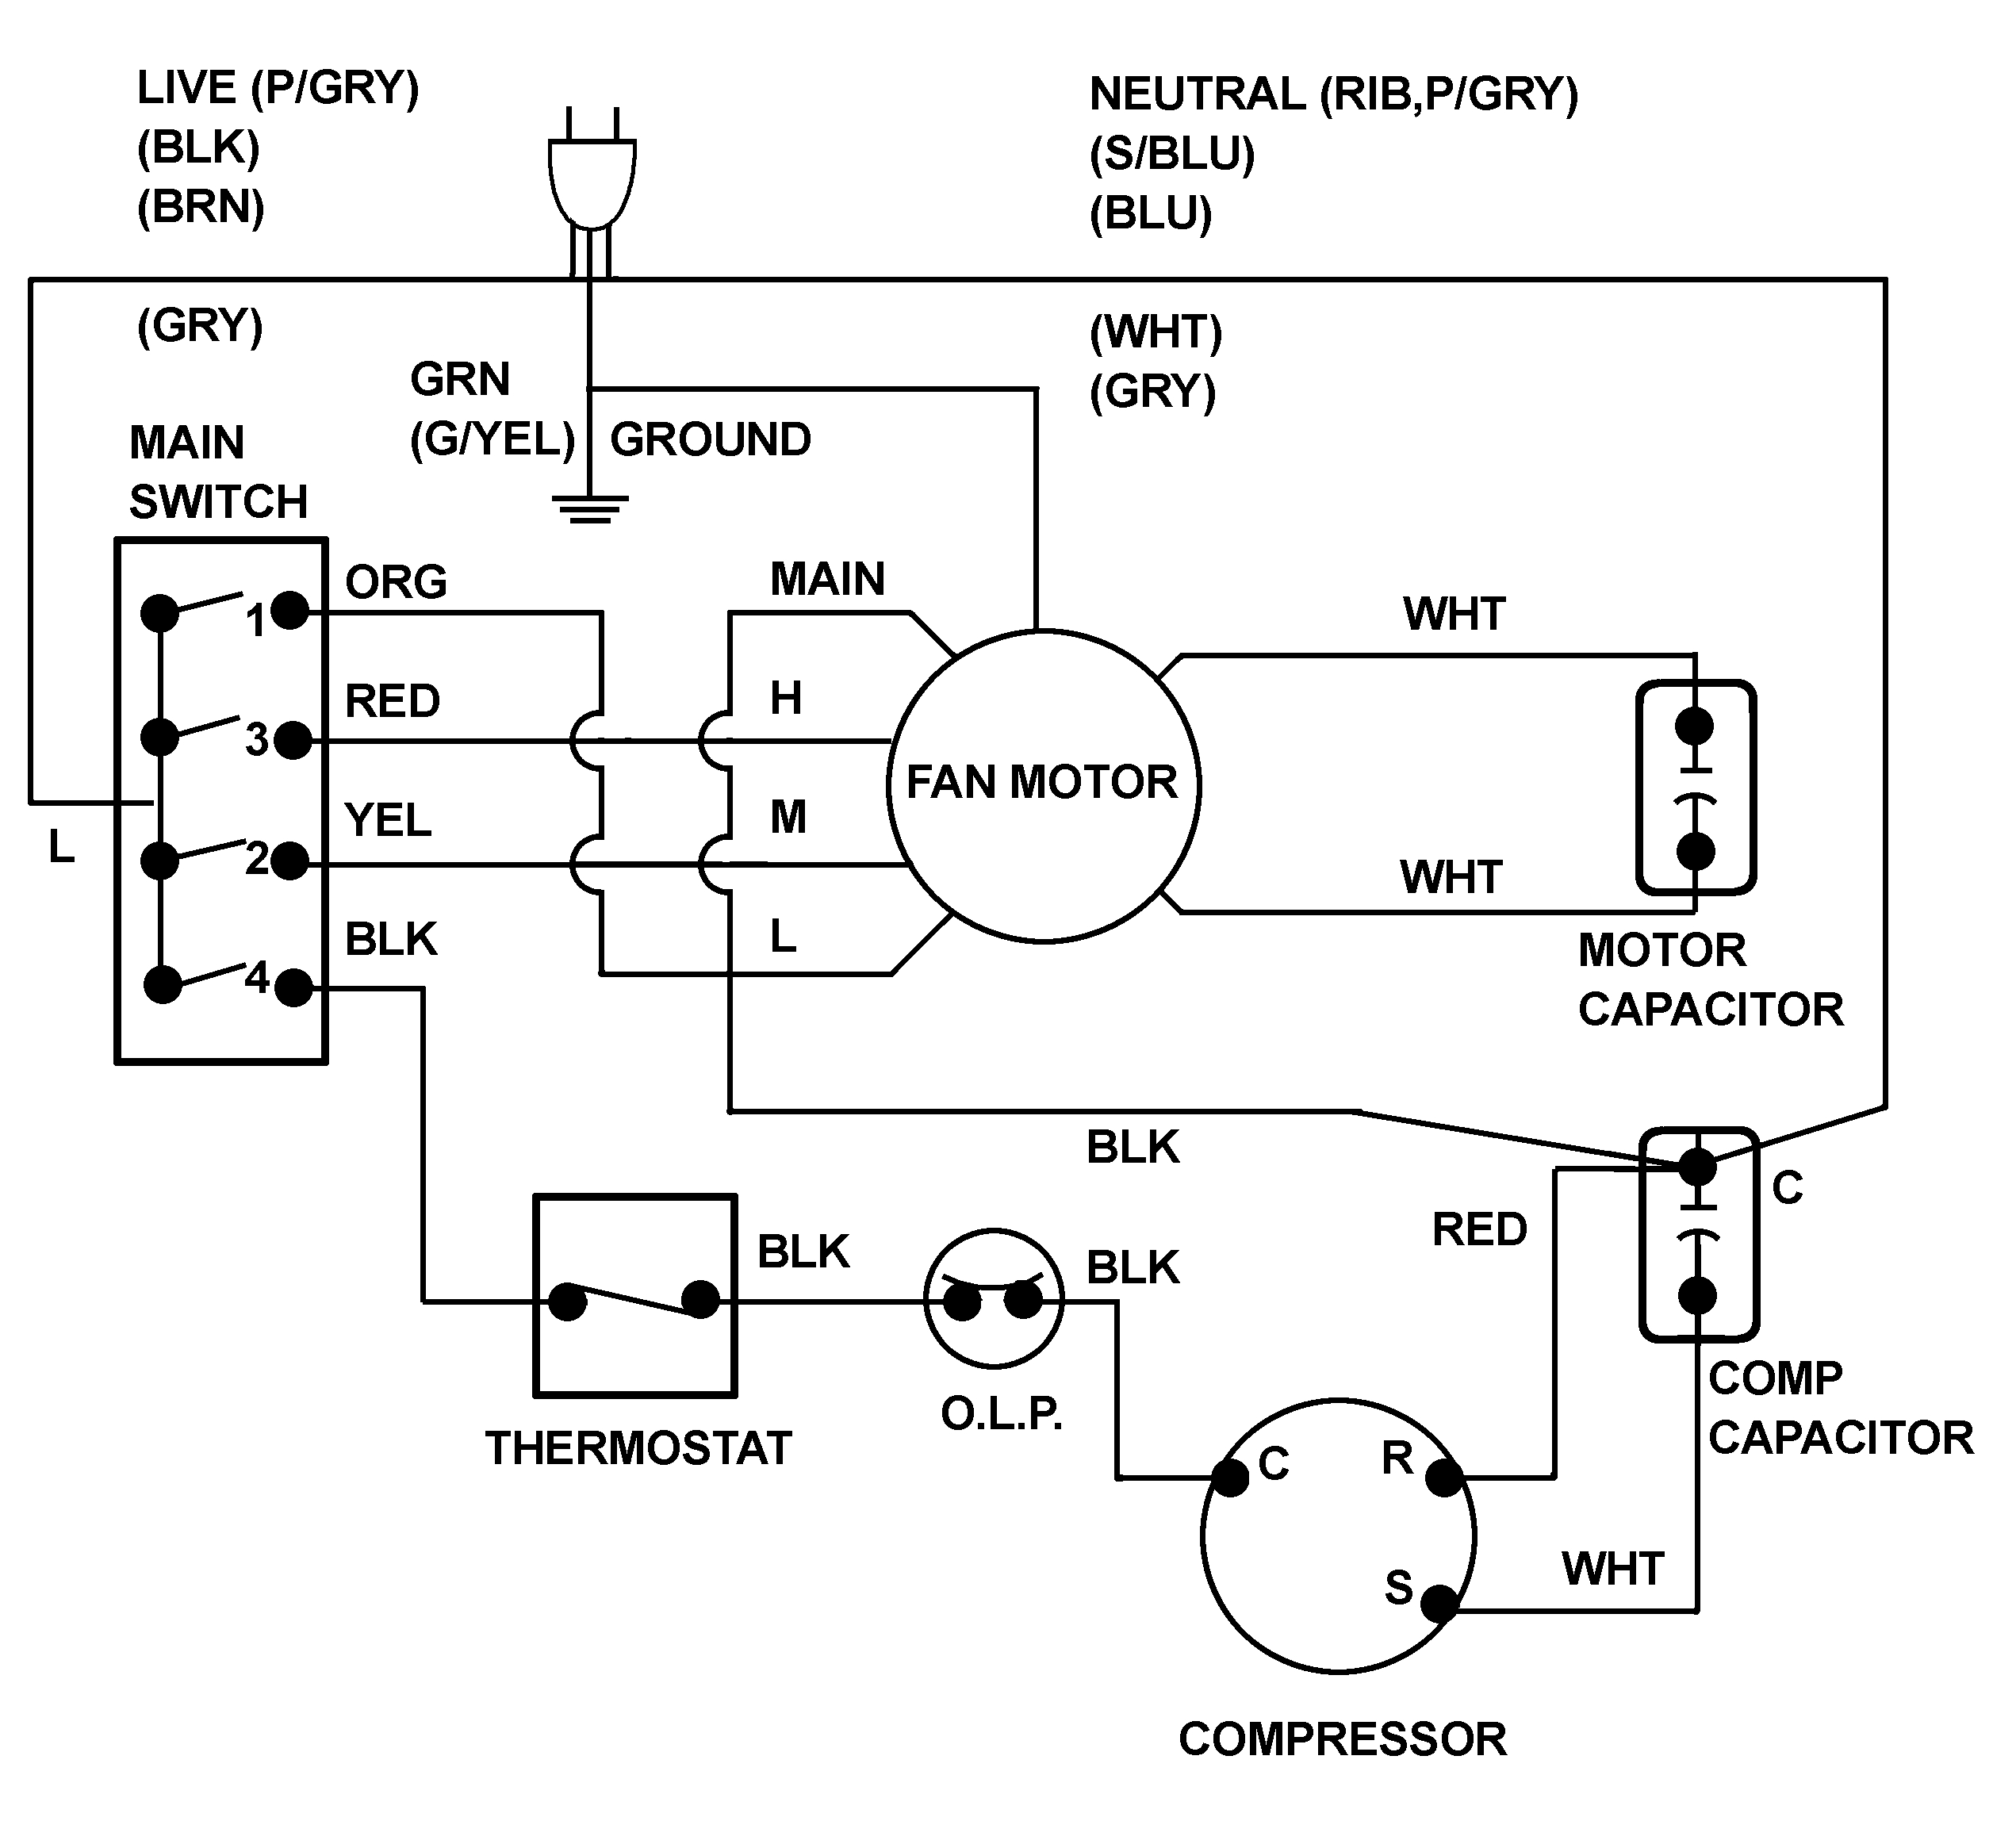 Ac Hvac Wiring | Wiring Diagram - Central Air Conditioner Wiring Diagram